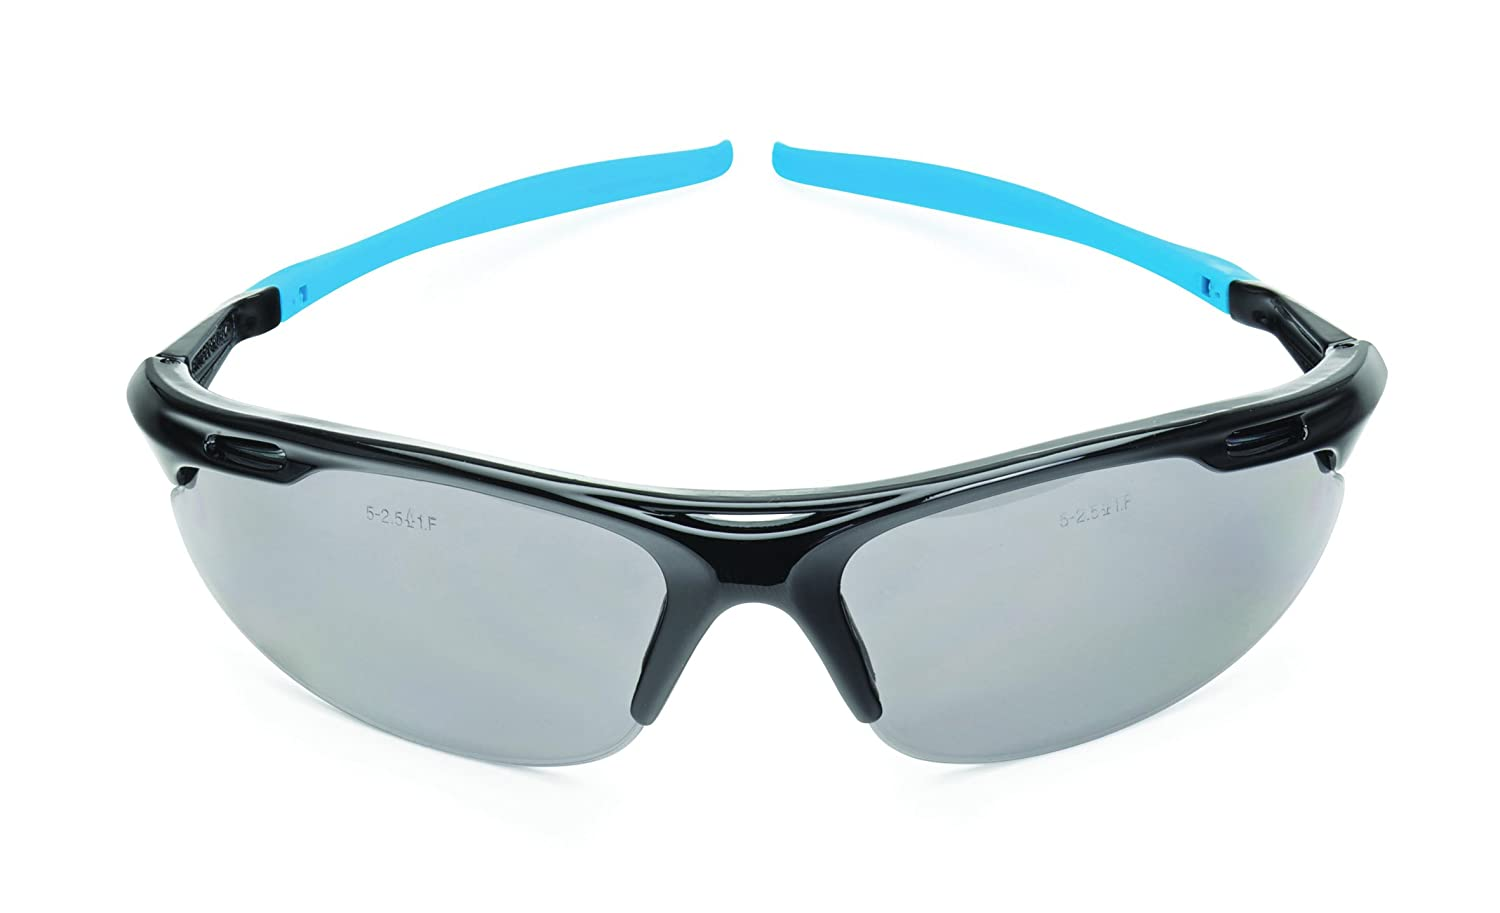 OX OX-S248101 Professional Wrap Around Safety Glasses, Clear OX Tools UK